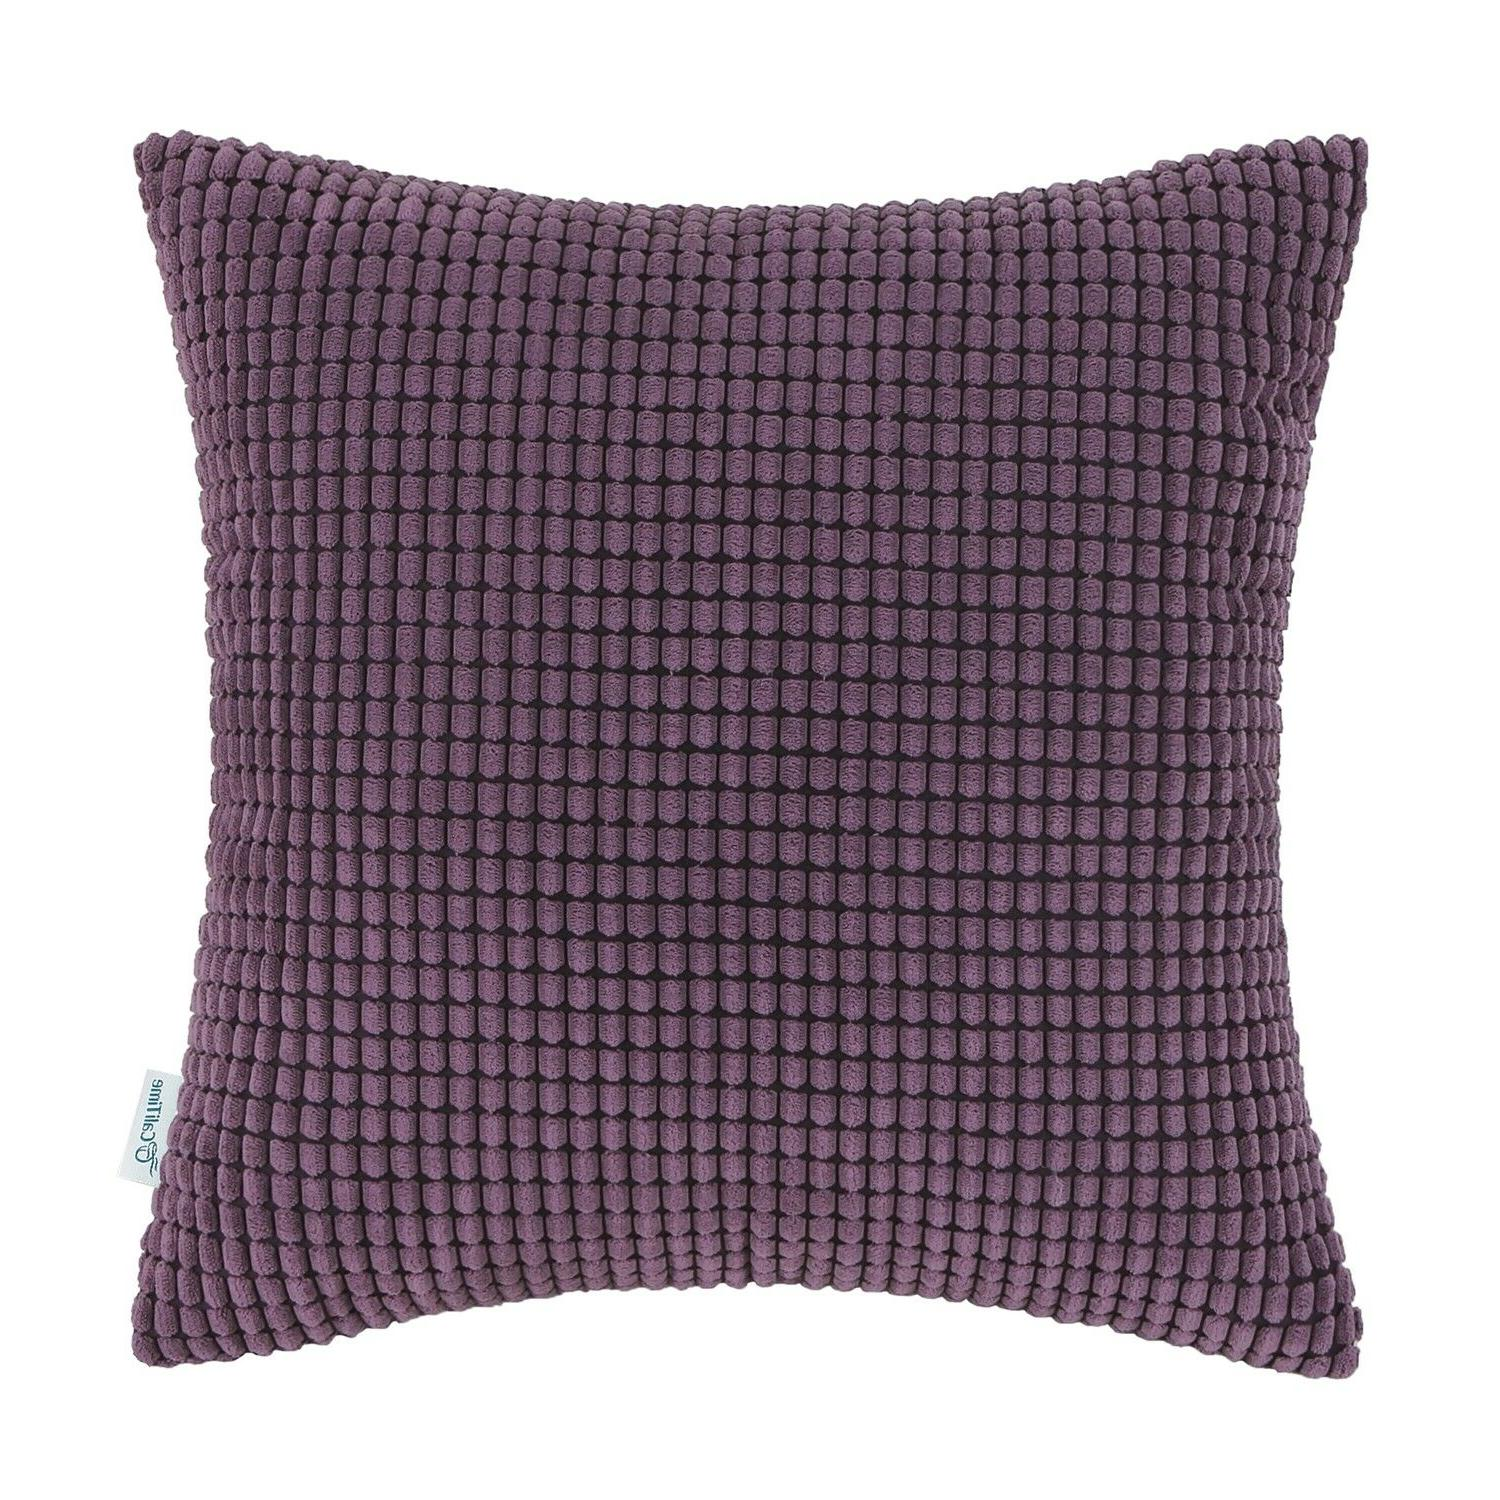 CaliTime Cushion Covers Solid Corn Stripes 22""